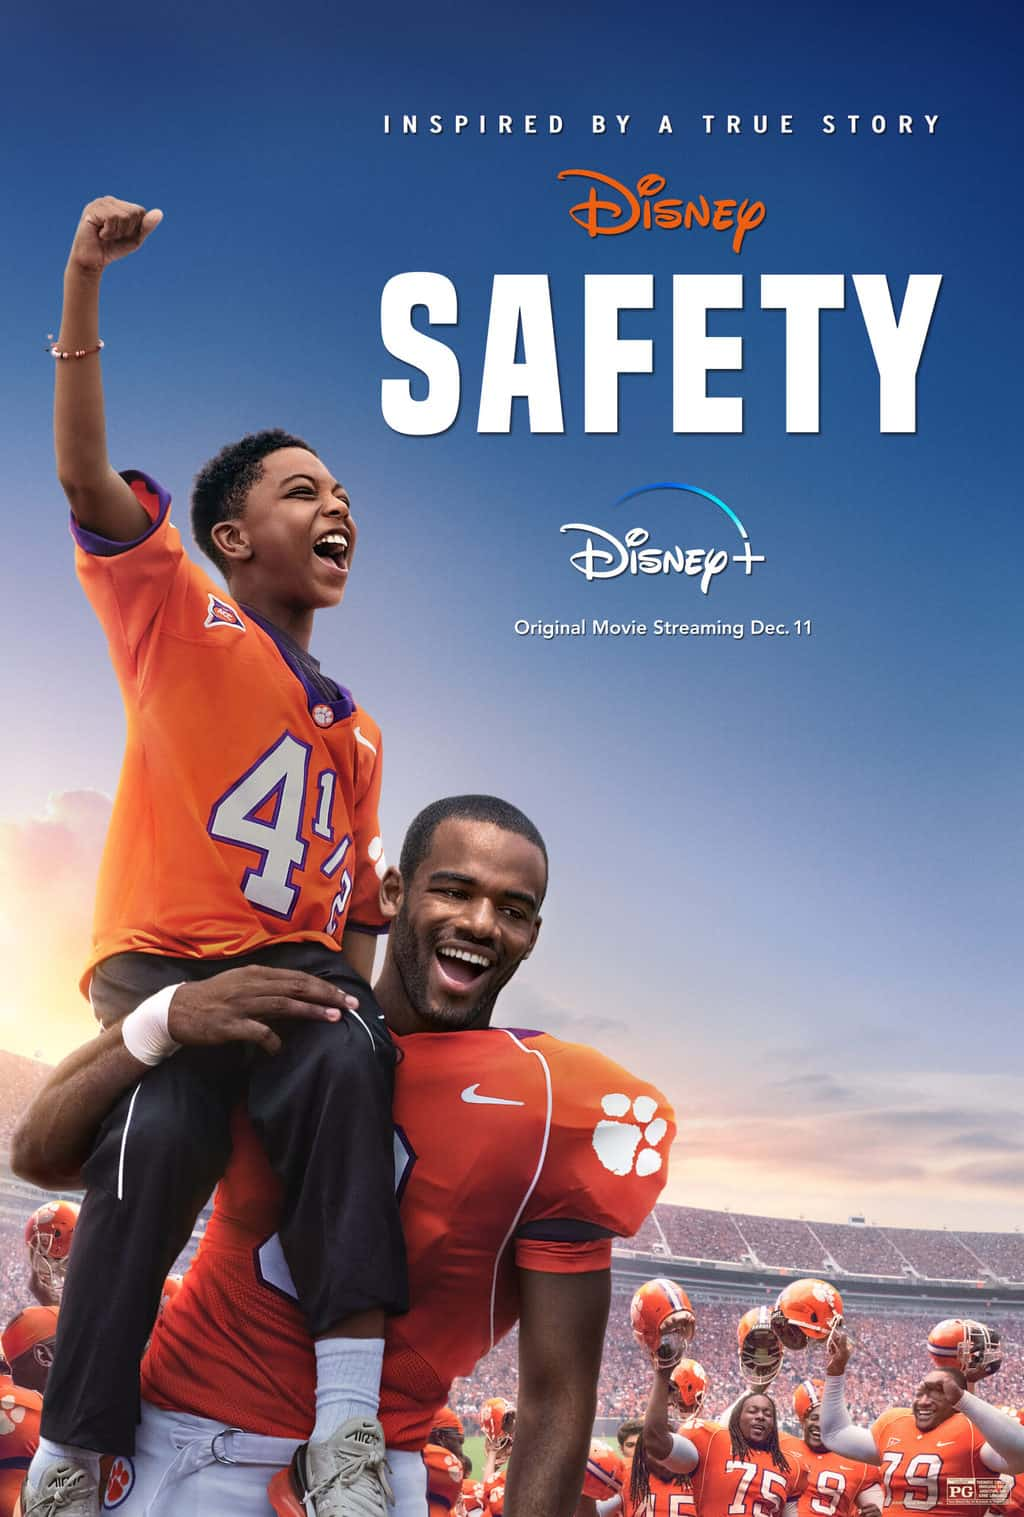 is safety ok for kids? Disney plus parent movie review